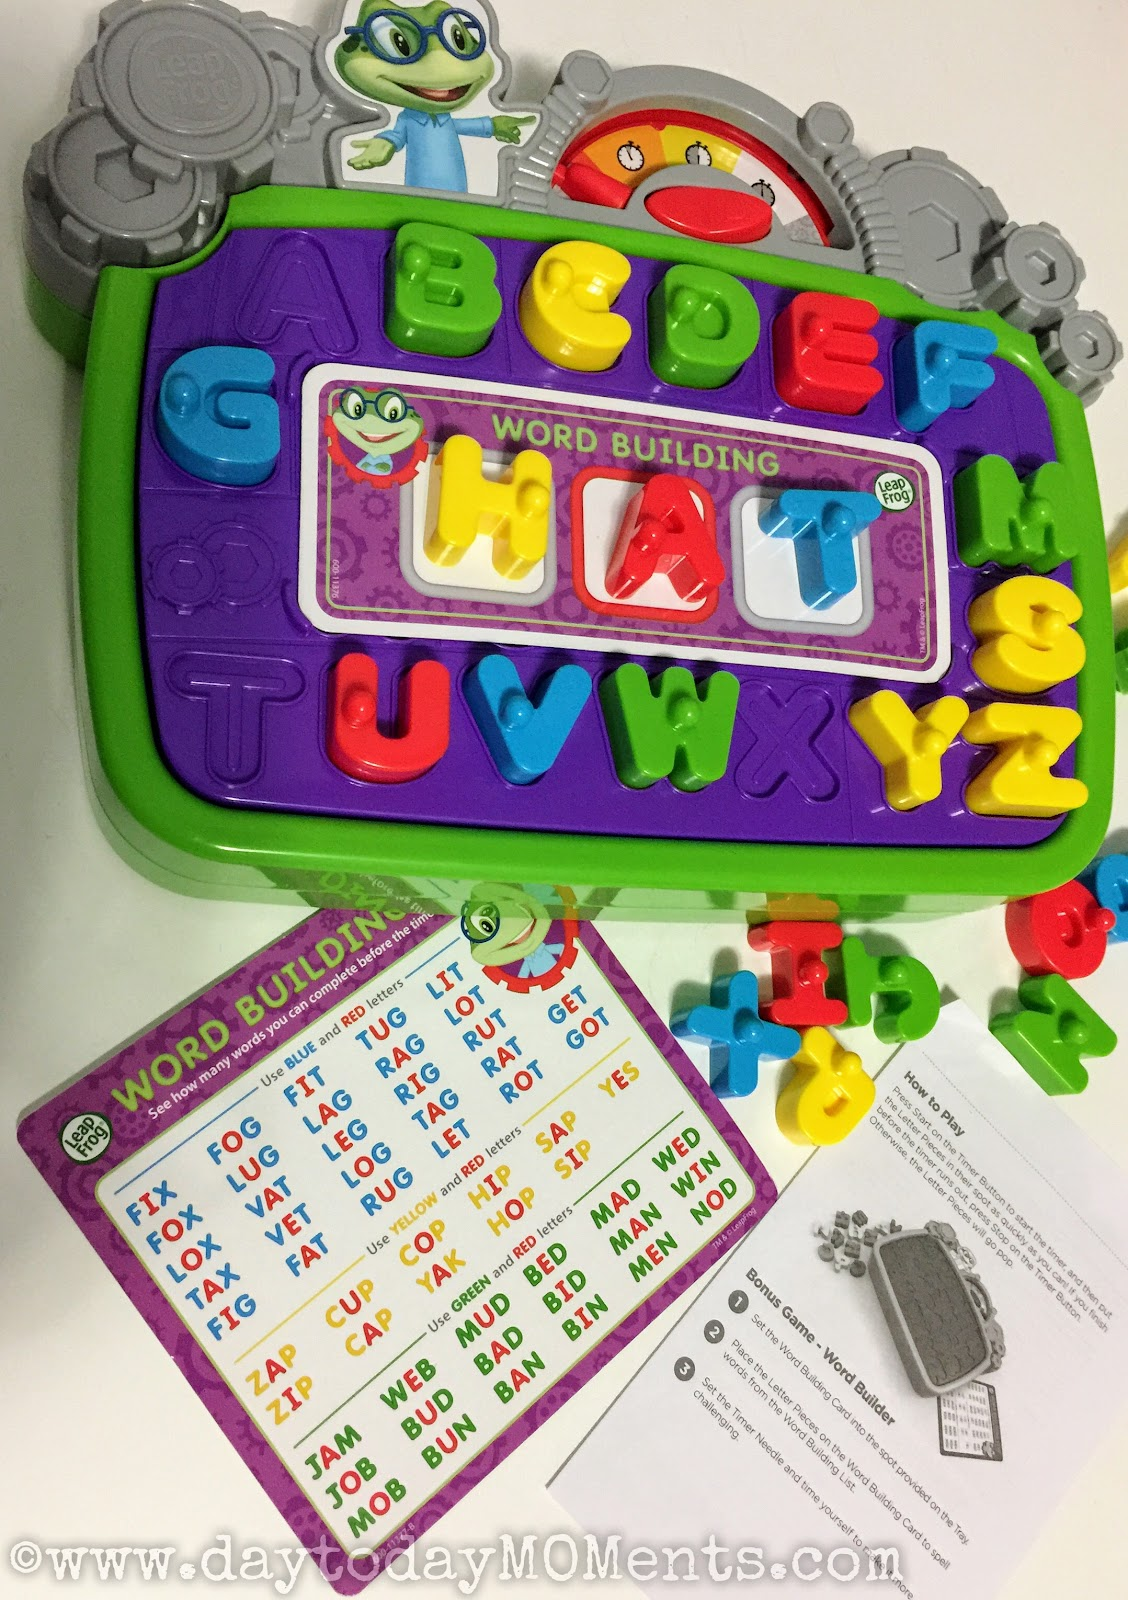 Day To Day Moments Leapfrog Letter Factory Leaping Letters